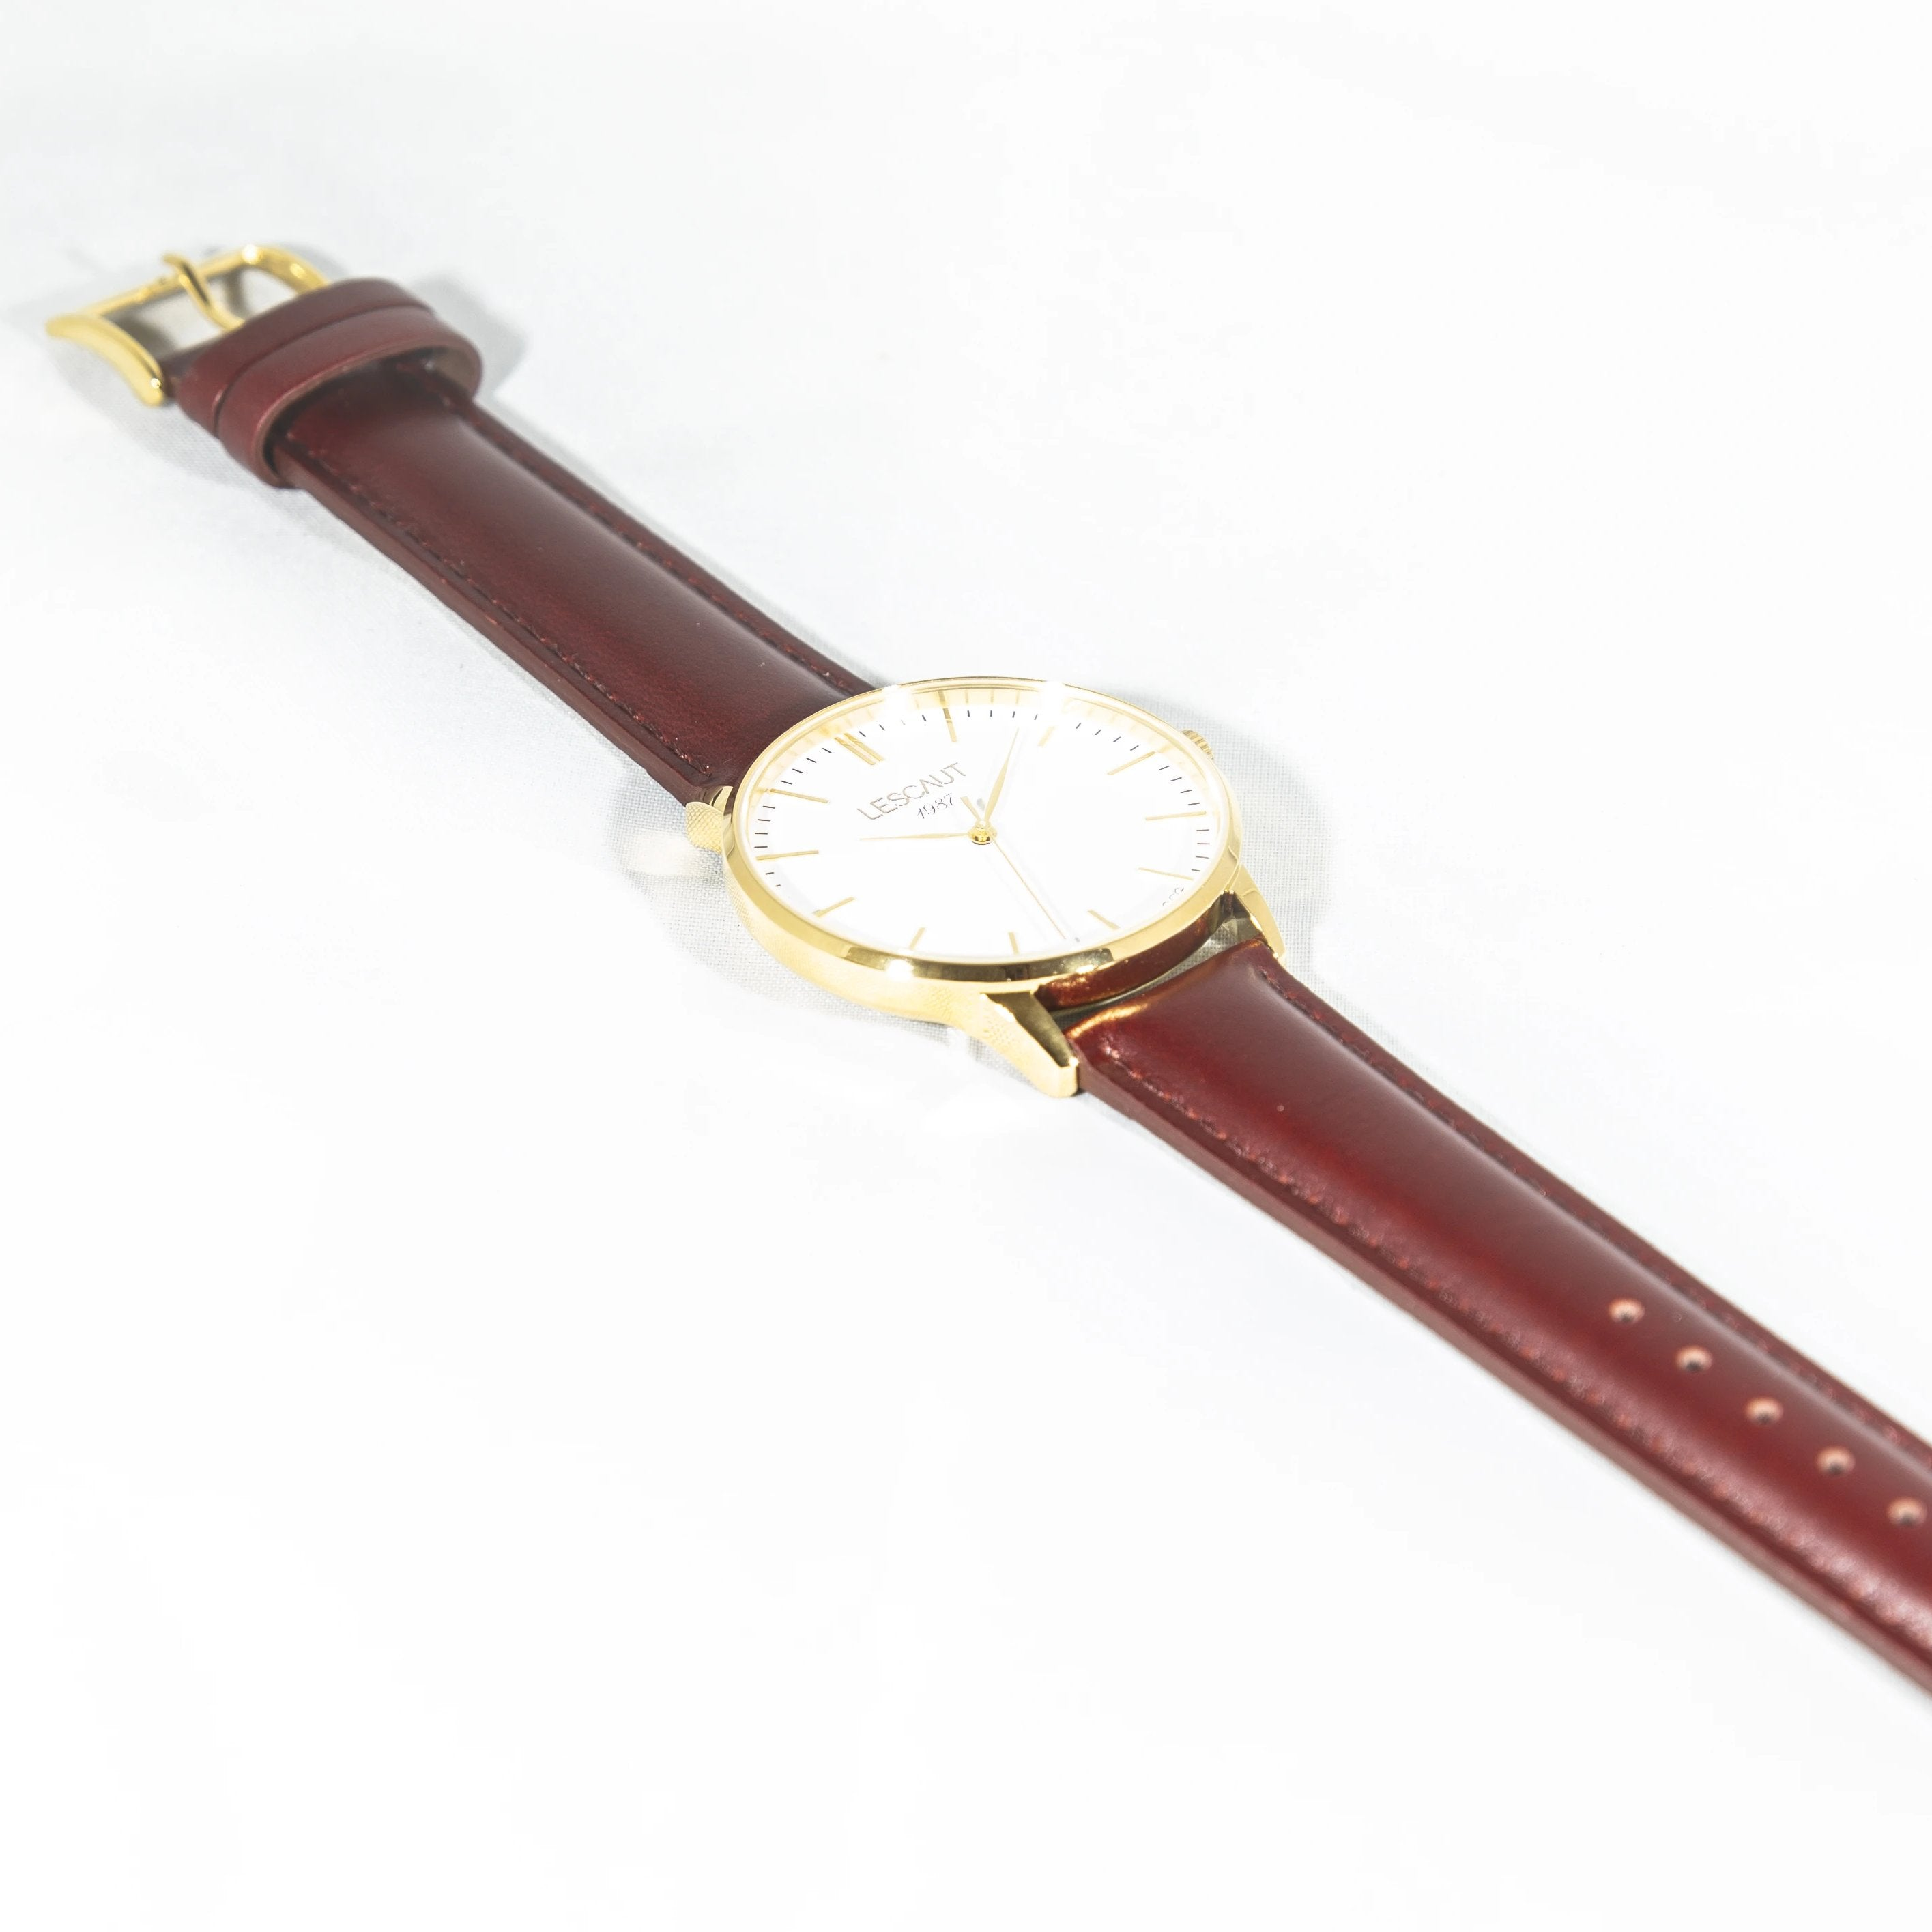 LESCAUT horloge geel gouden kast witte wijzerplaat bordeaux leder bandje Watch yellow gold case white dial burgundy leather strap